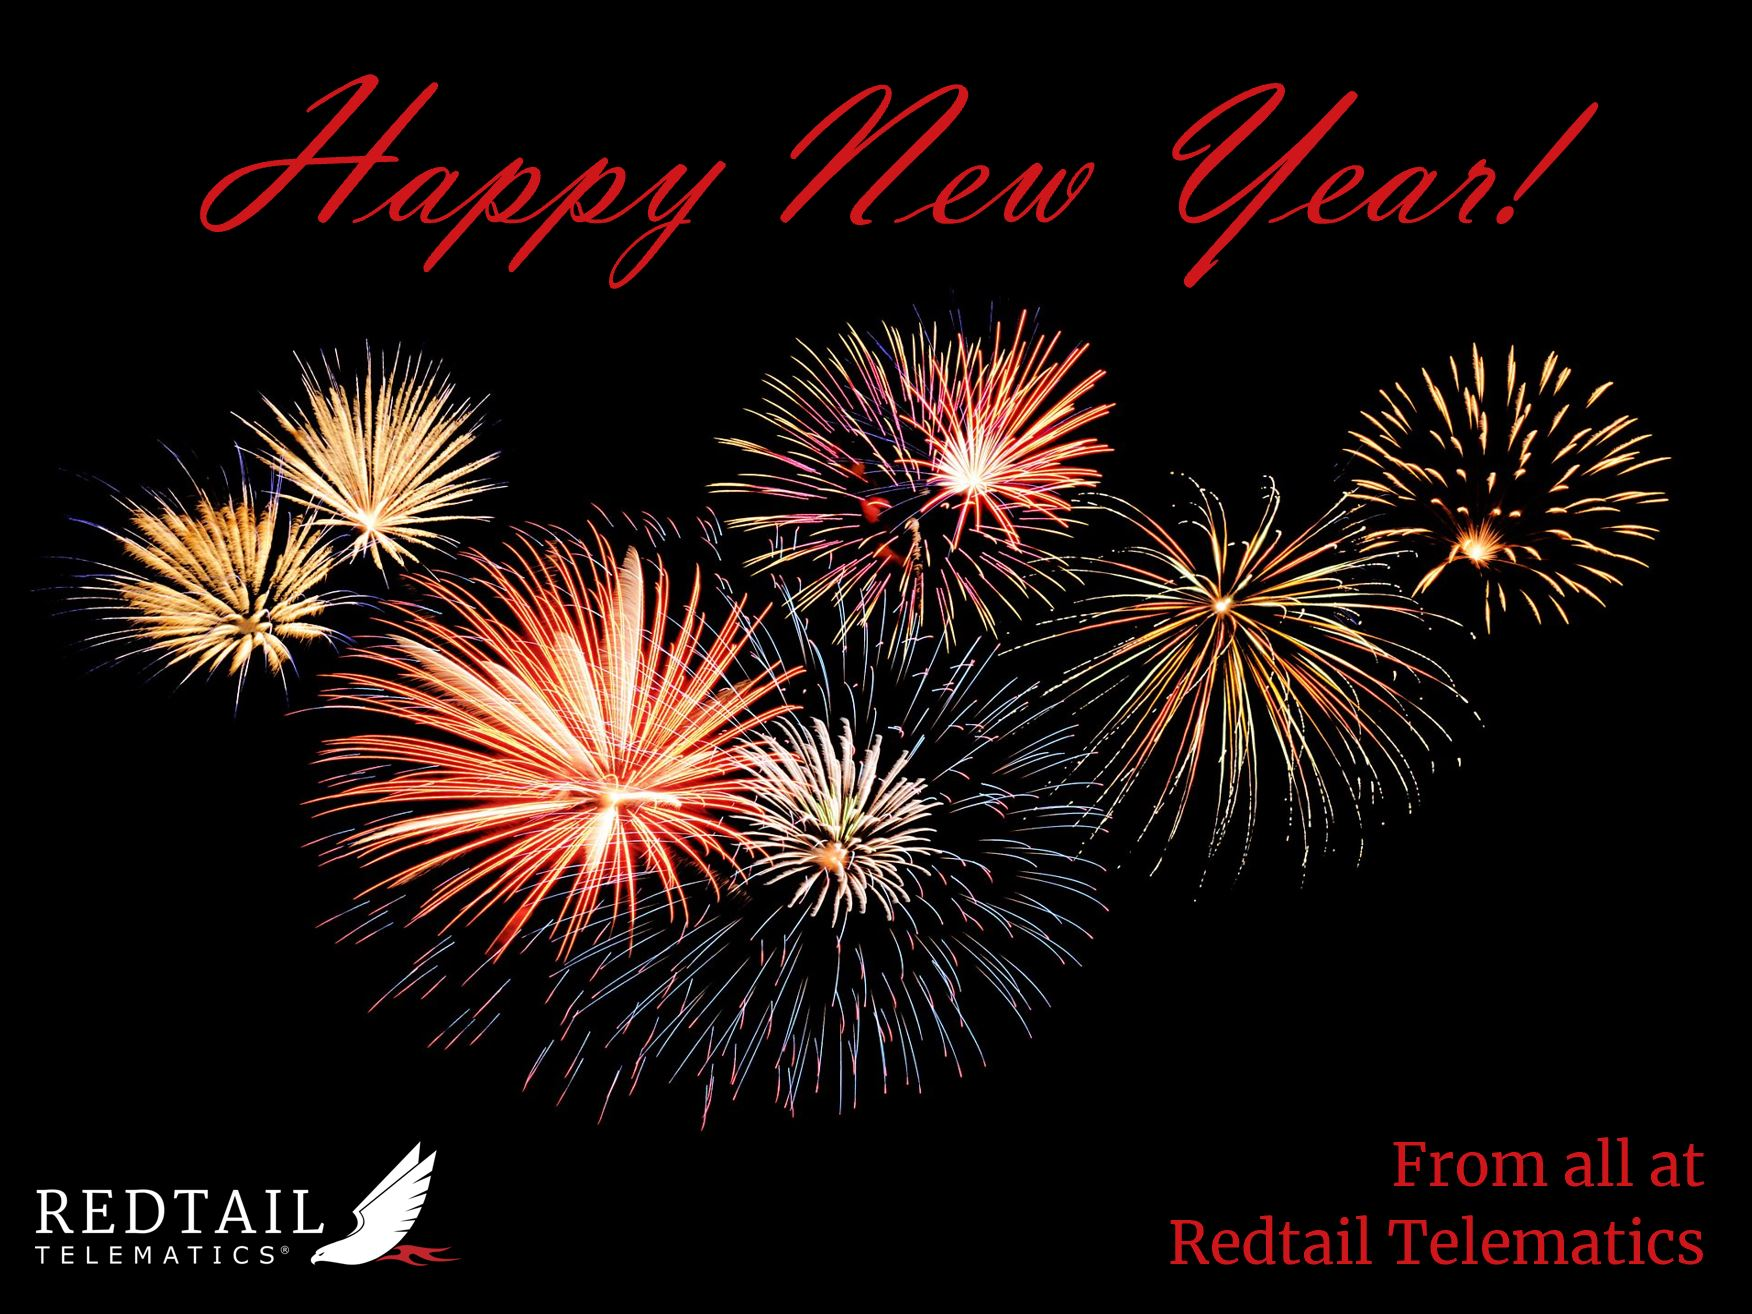 redtail-telematics-new-year